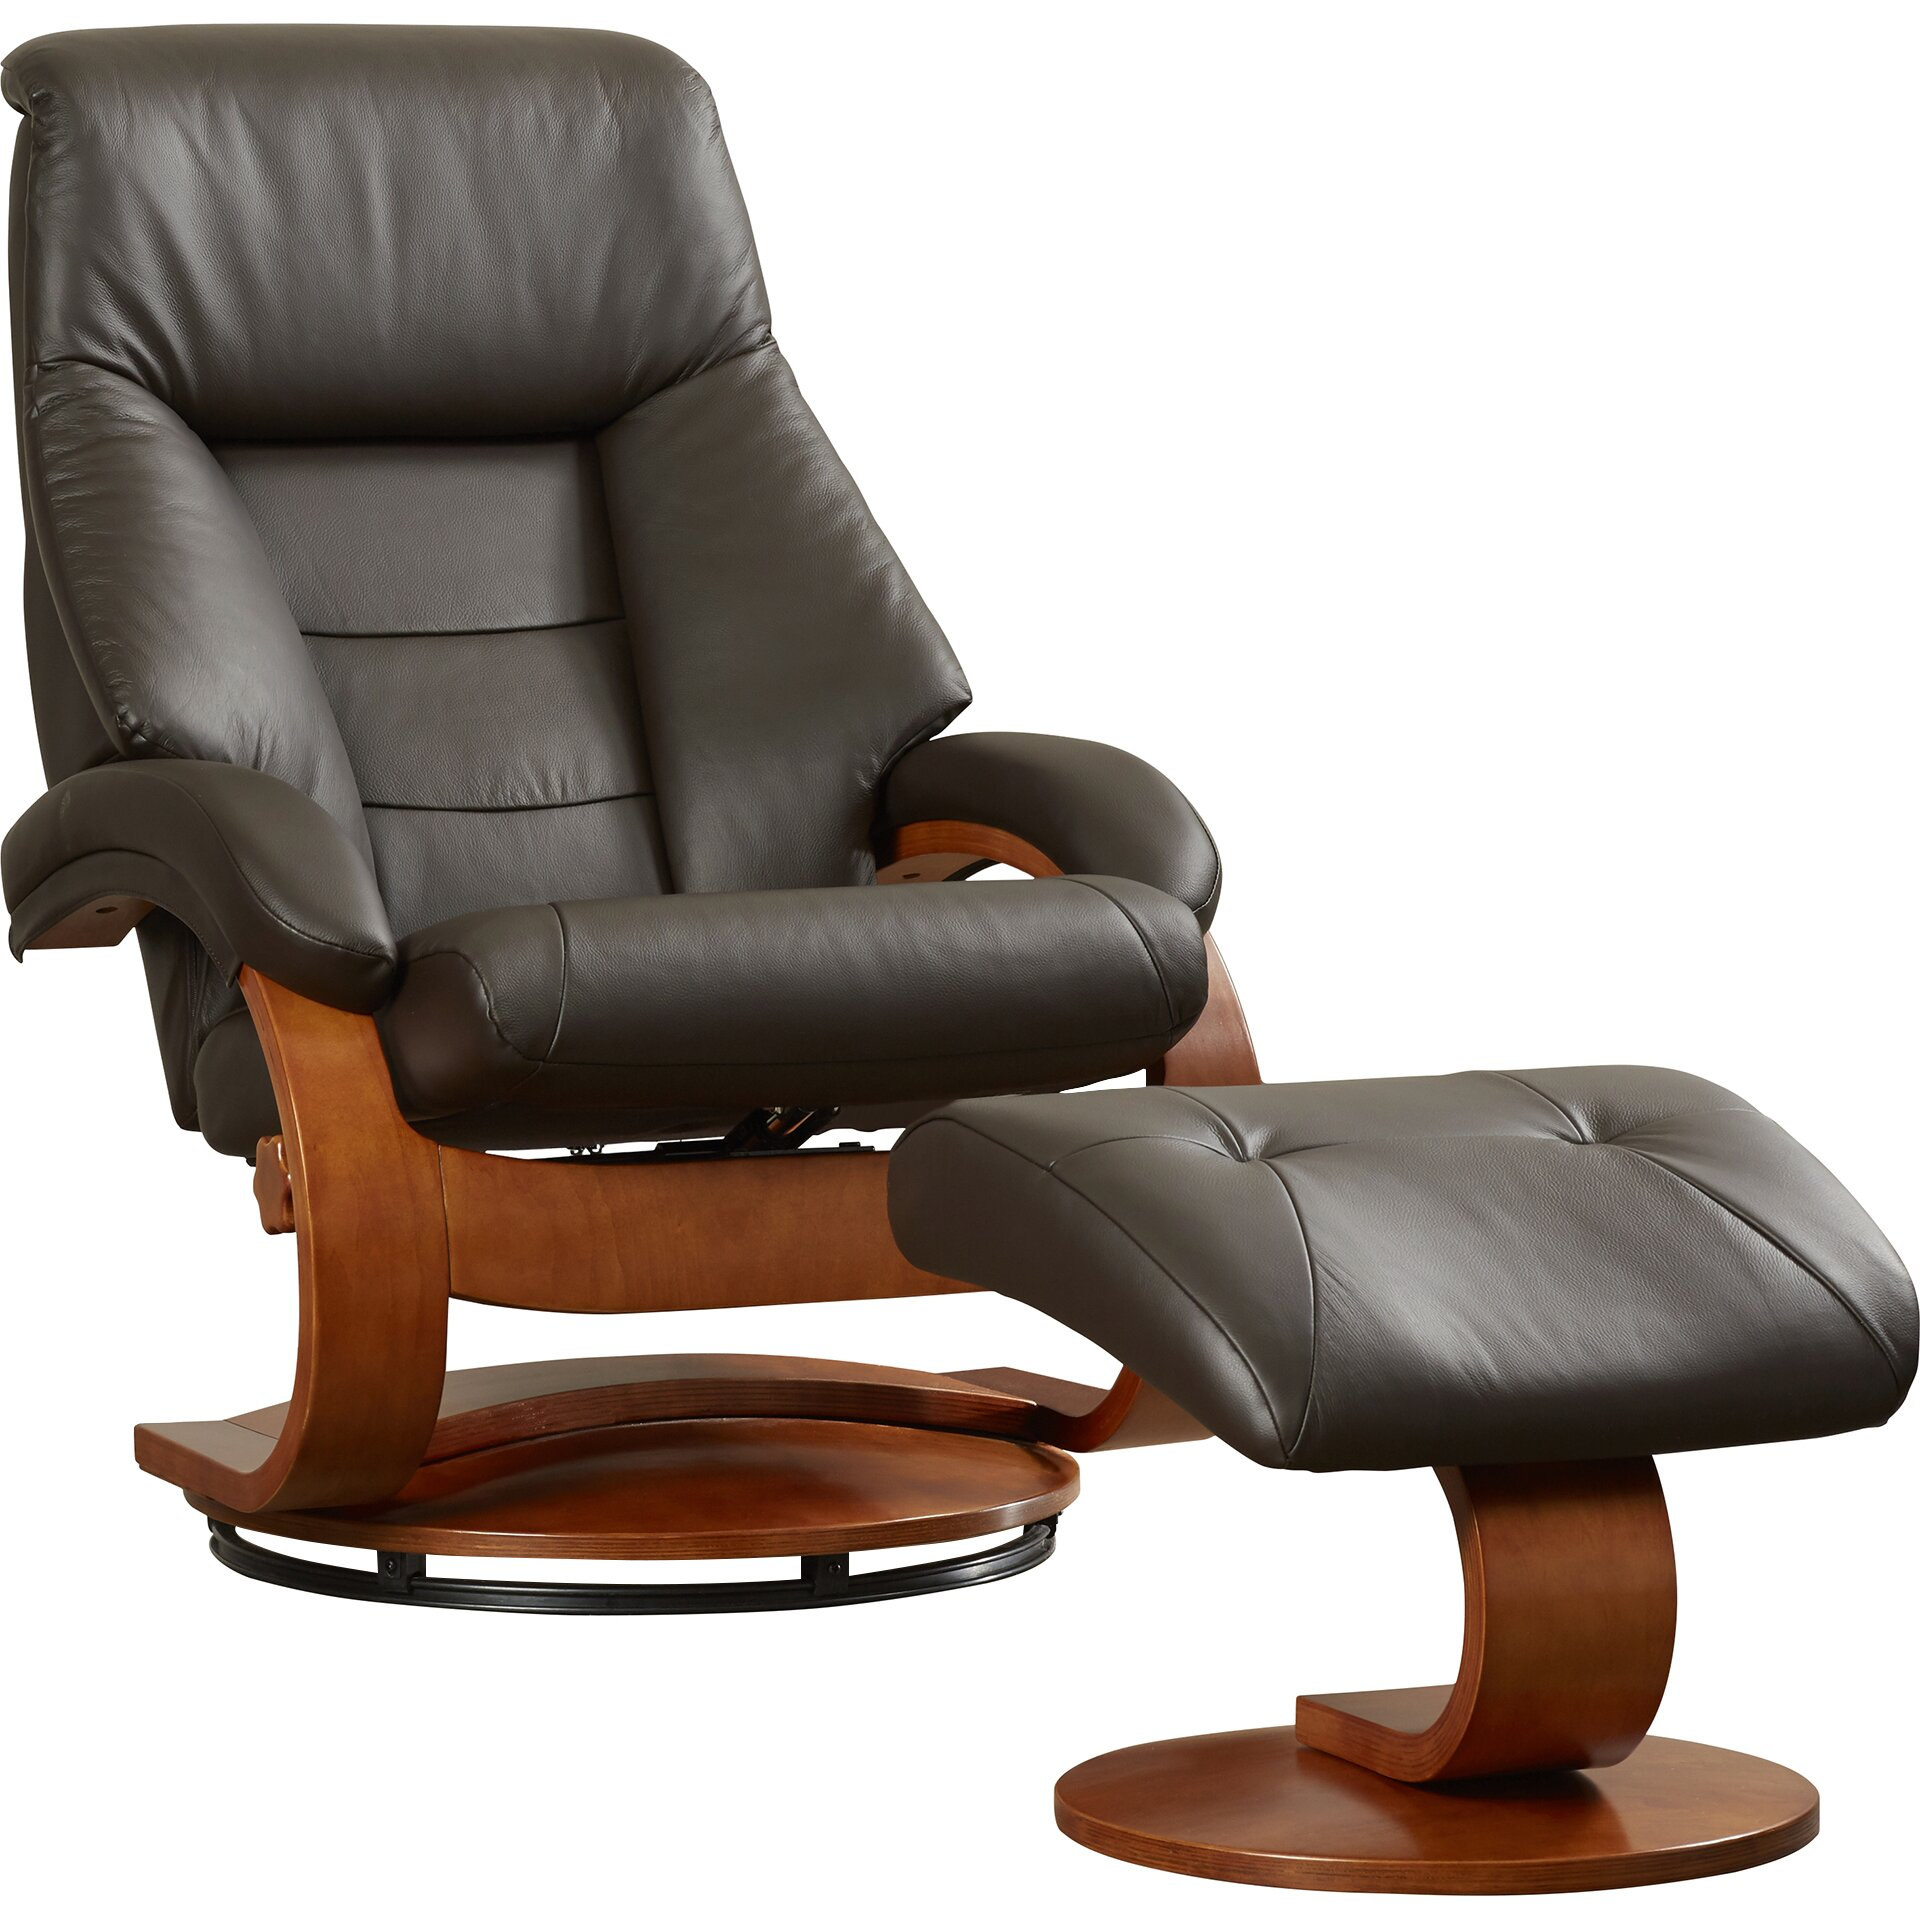 latitude run 58 leather ergonomic recliner and ottoman reviews wayfair. Black Bedroom Furniture Sets. Home Design Ideas